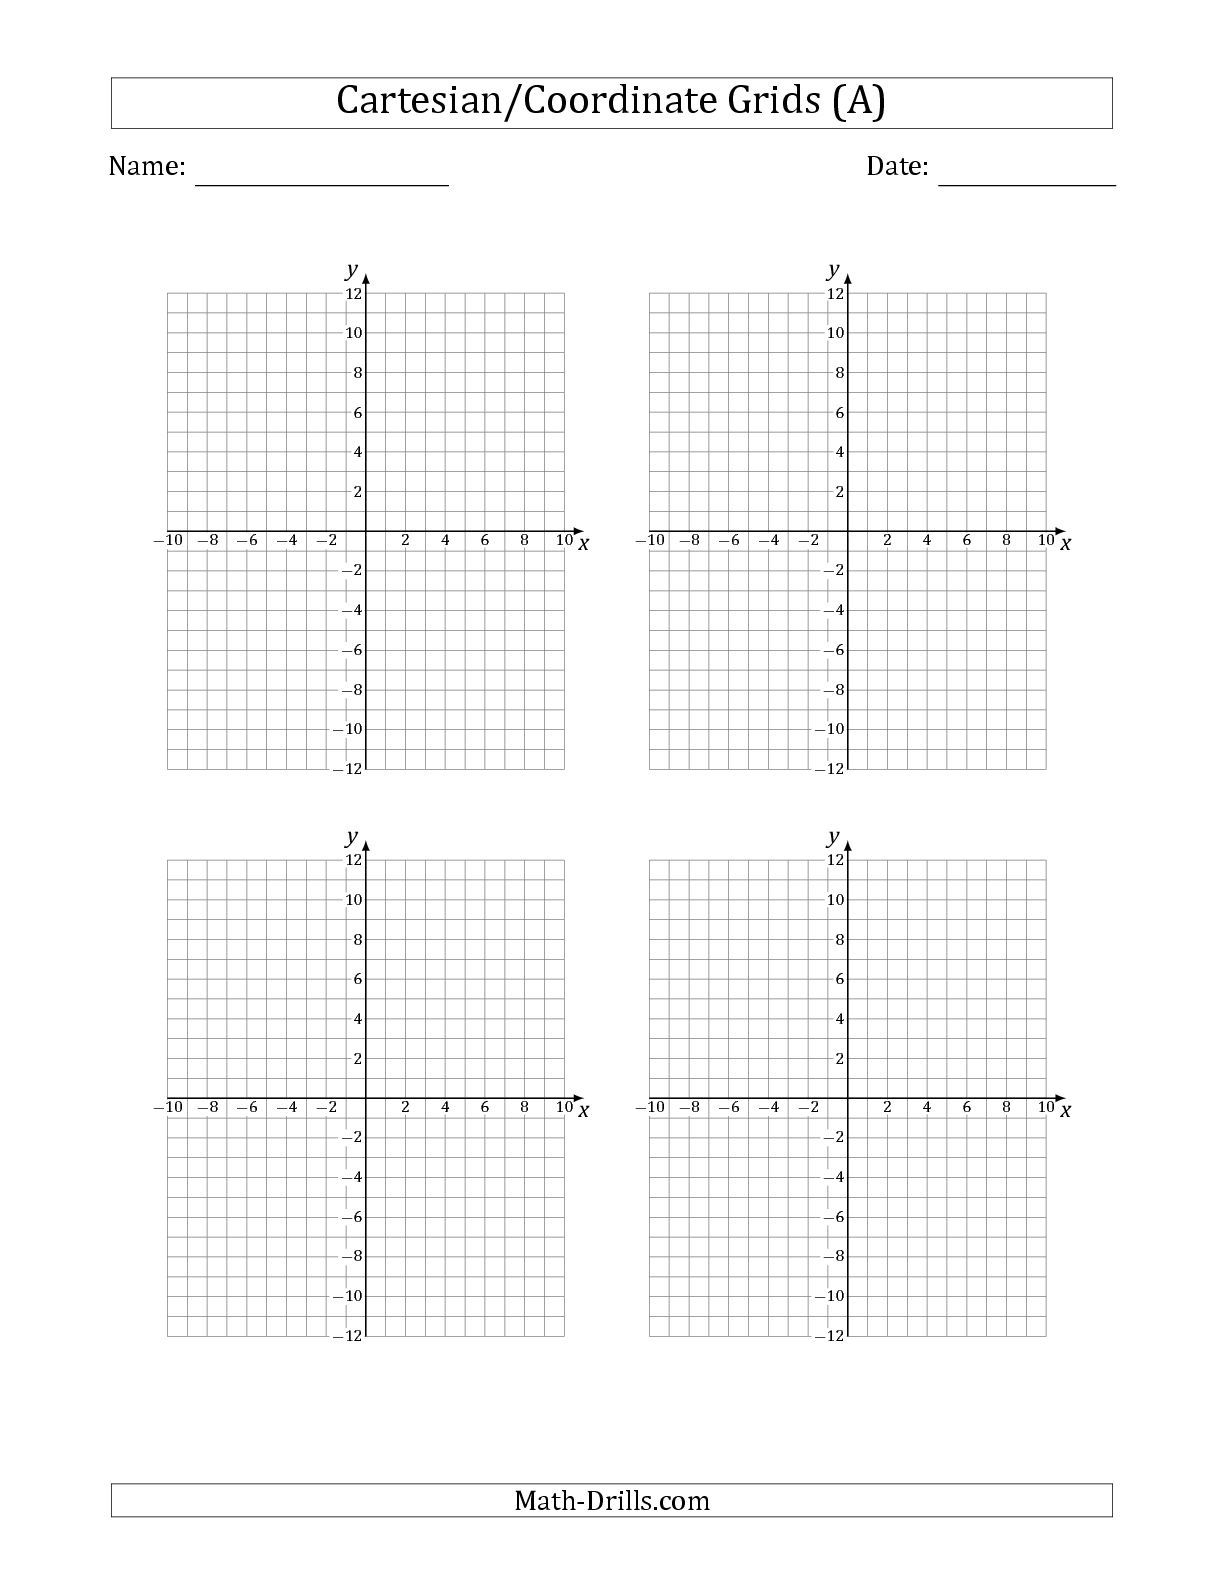 hight resolution of The 4 Per Page Cartesian/Coordinate Grids math worksheet from the Graph  Paper page at Mat…   Coordinate grid